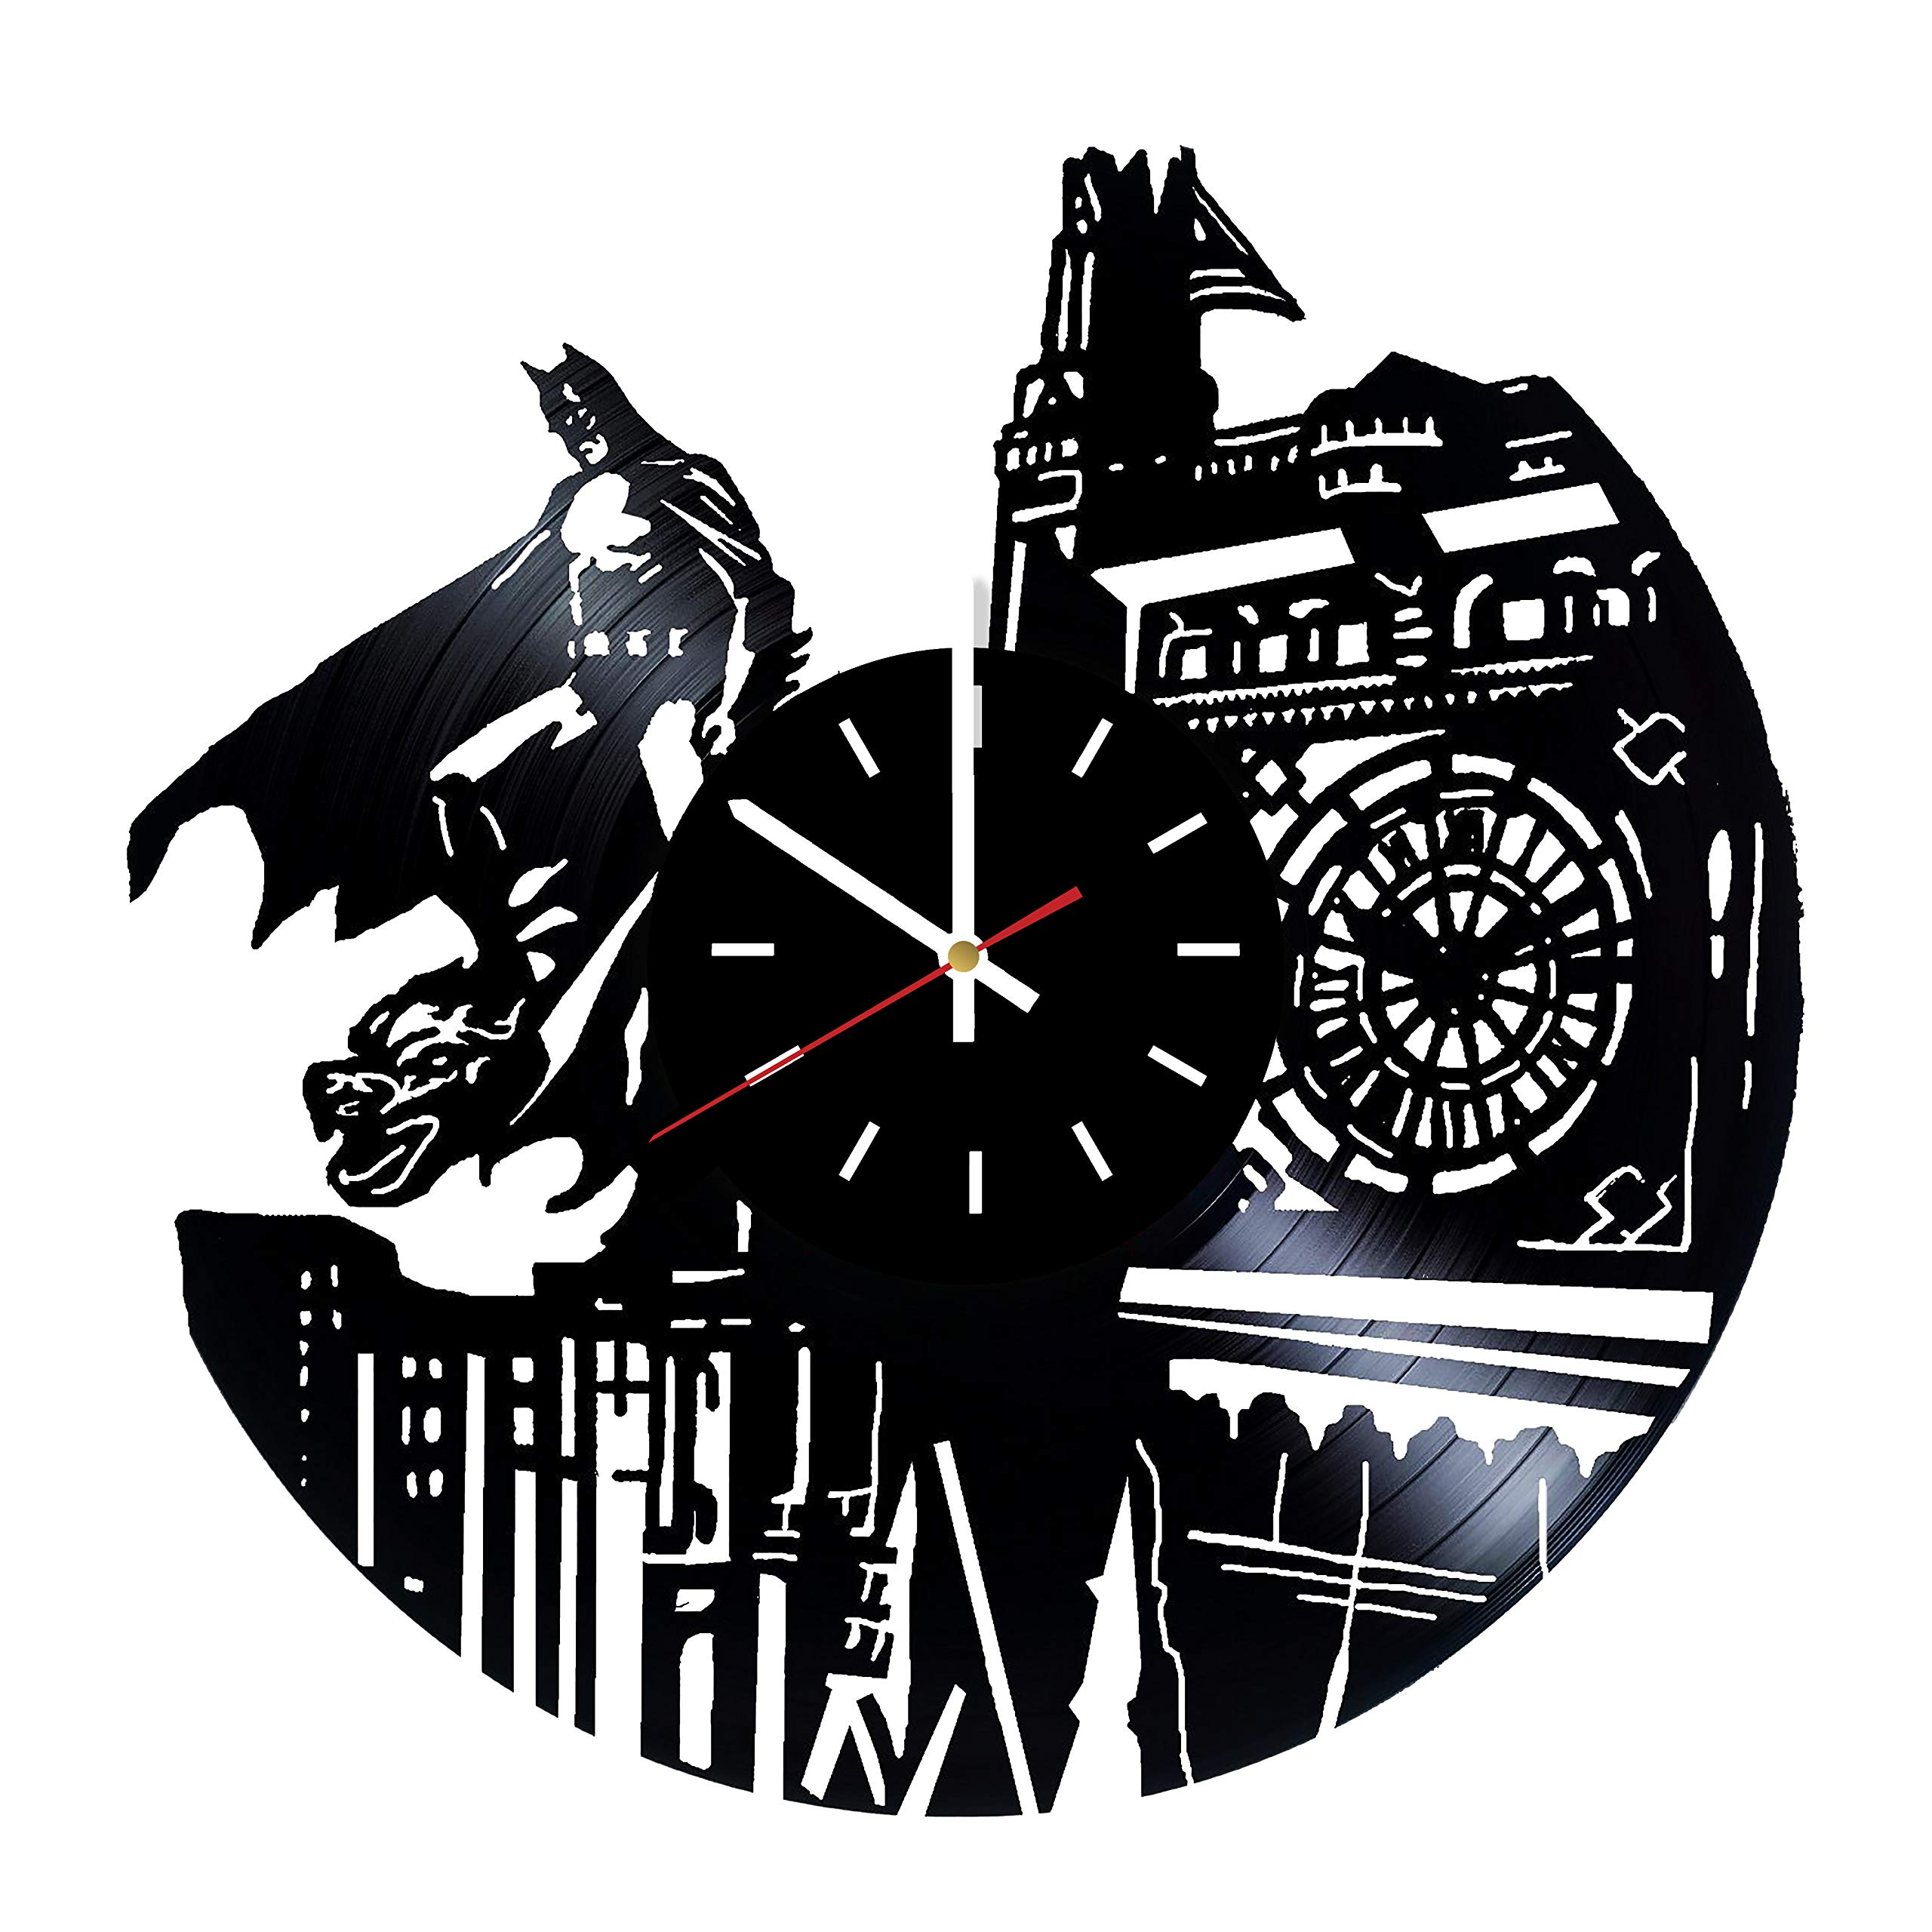 Everyday Arts Batman American Comic Books Design Vinyl Record Wall Clock - Get Unique Bedroom or Garage Wall Decor - Gift Ideas for Friends, Brother - Darth Vader Unique Modern Art